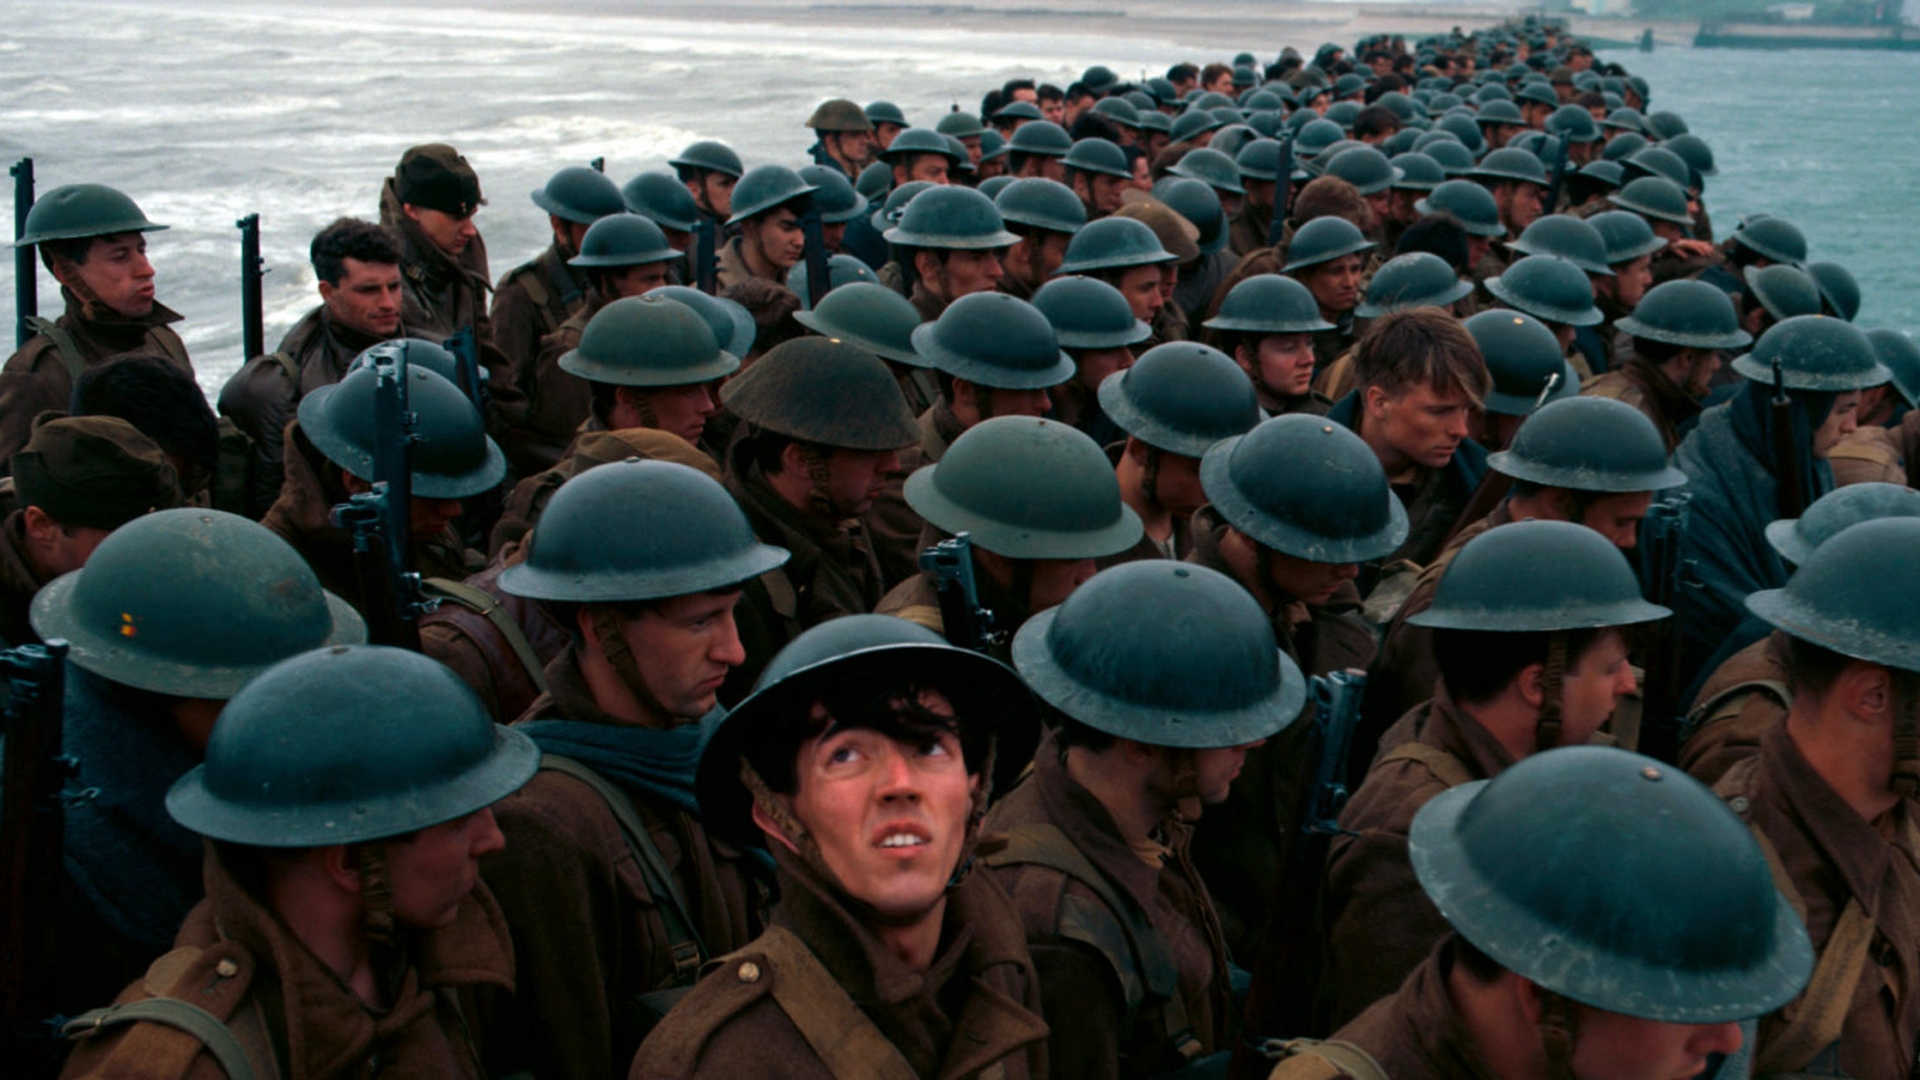 Dunkirk, the epic war thriller written, co-produced, and directed by Christopher Nolan set in the Second World War around the Dunkirk evacuation. (Credit: Warner Bros/Lifestyle Pictures/Alamy Stock Photo)